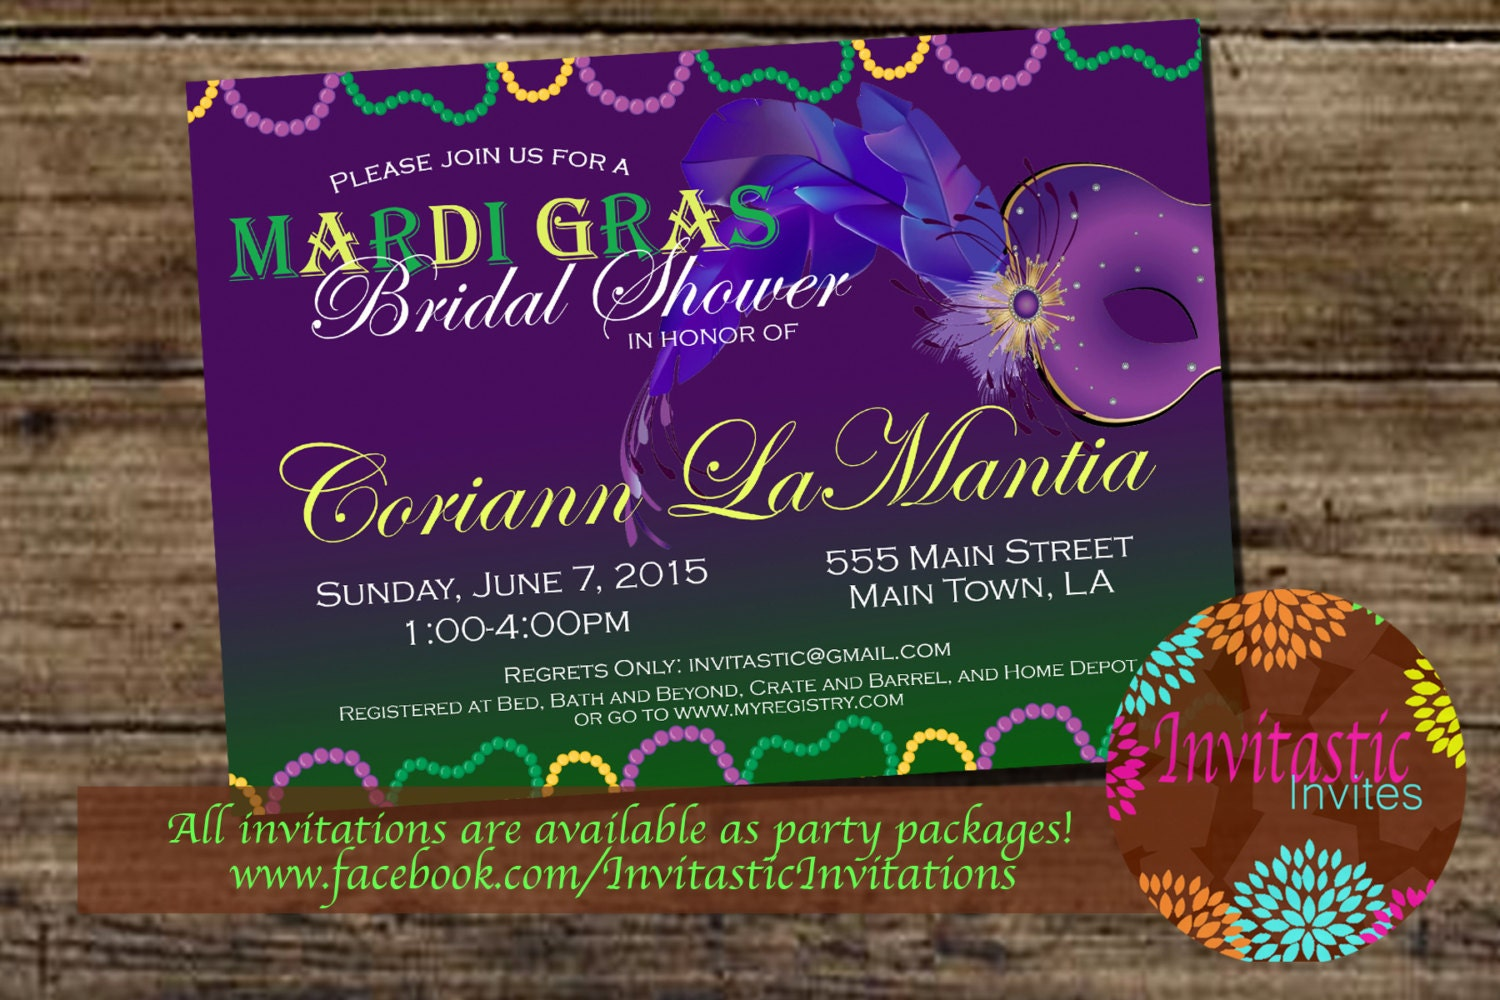 Wedding Invitations New Orleans: Mardi Gras Theme Bridal Shower Invitation New Orleans Theme